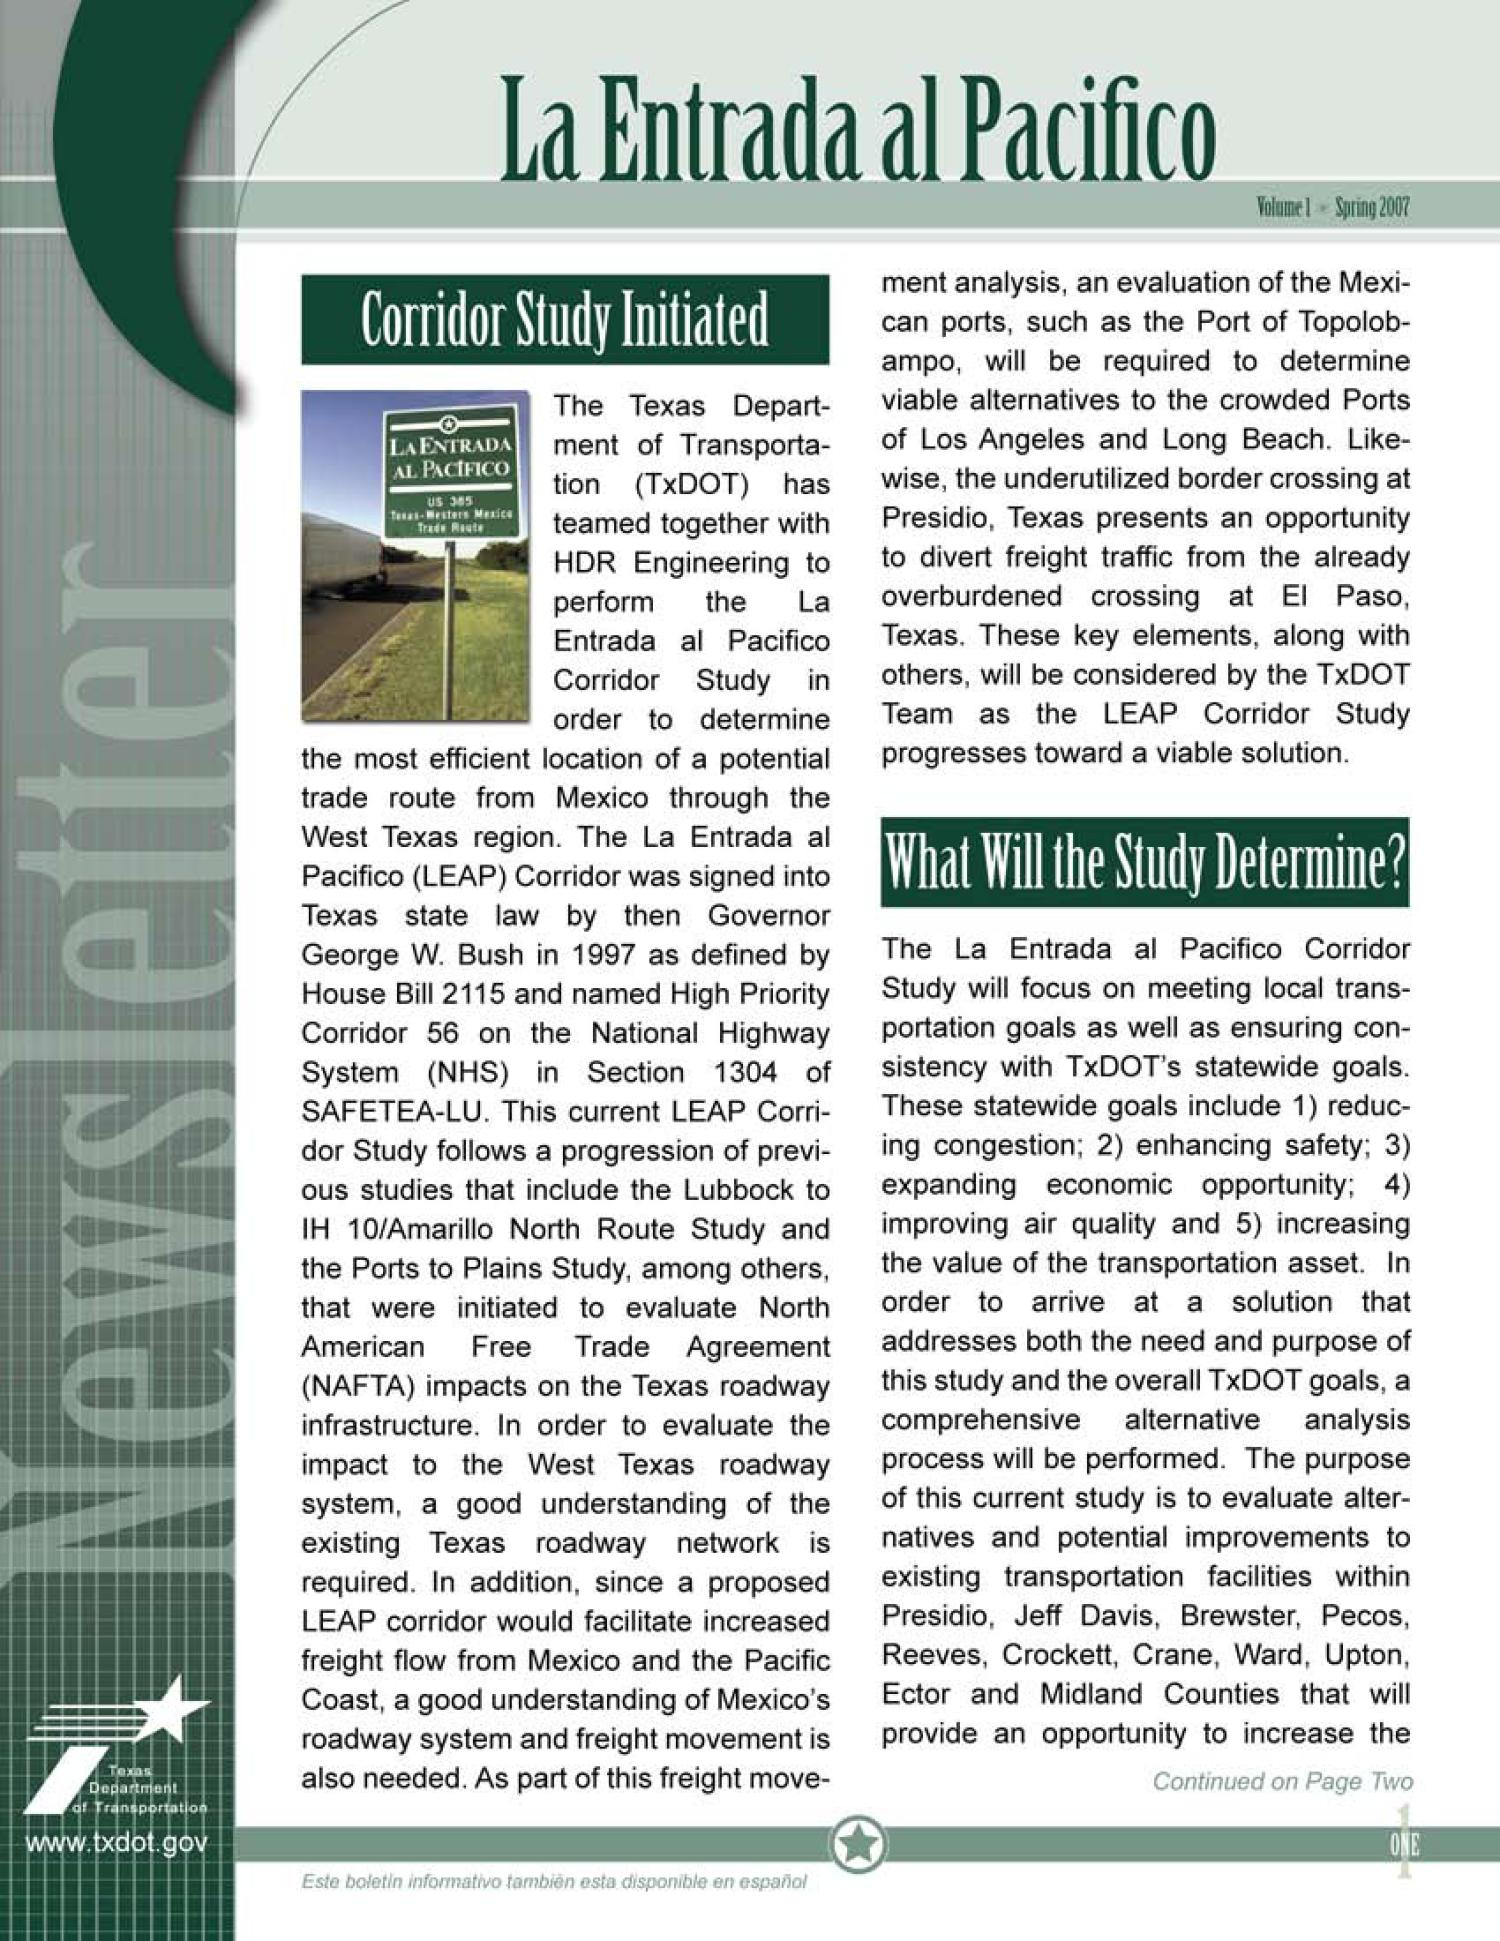 La Entrada al Pacifico Newsletter, Volume 1, Spring 2007                                                                                                      1